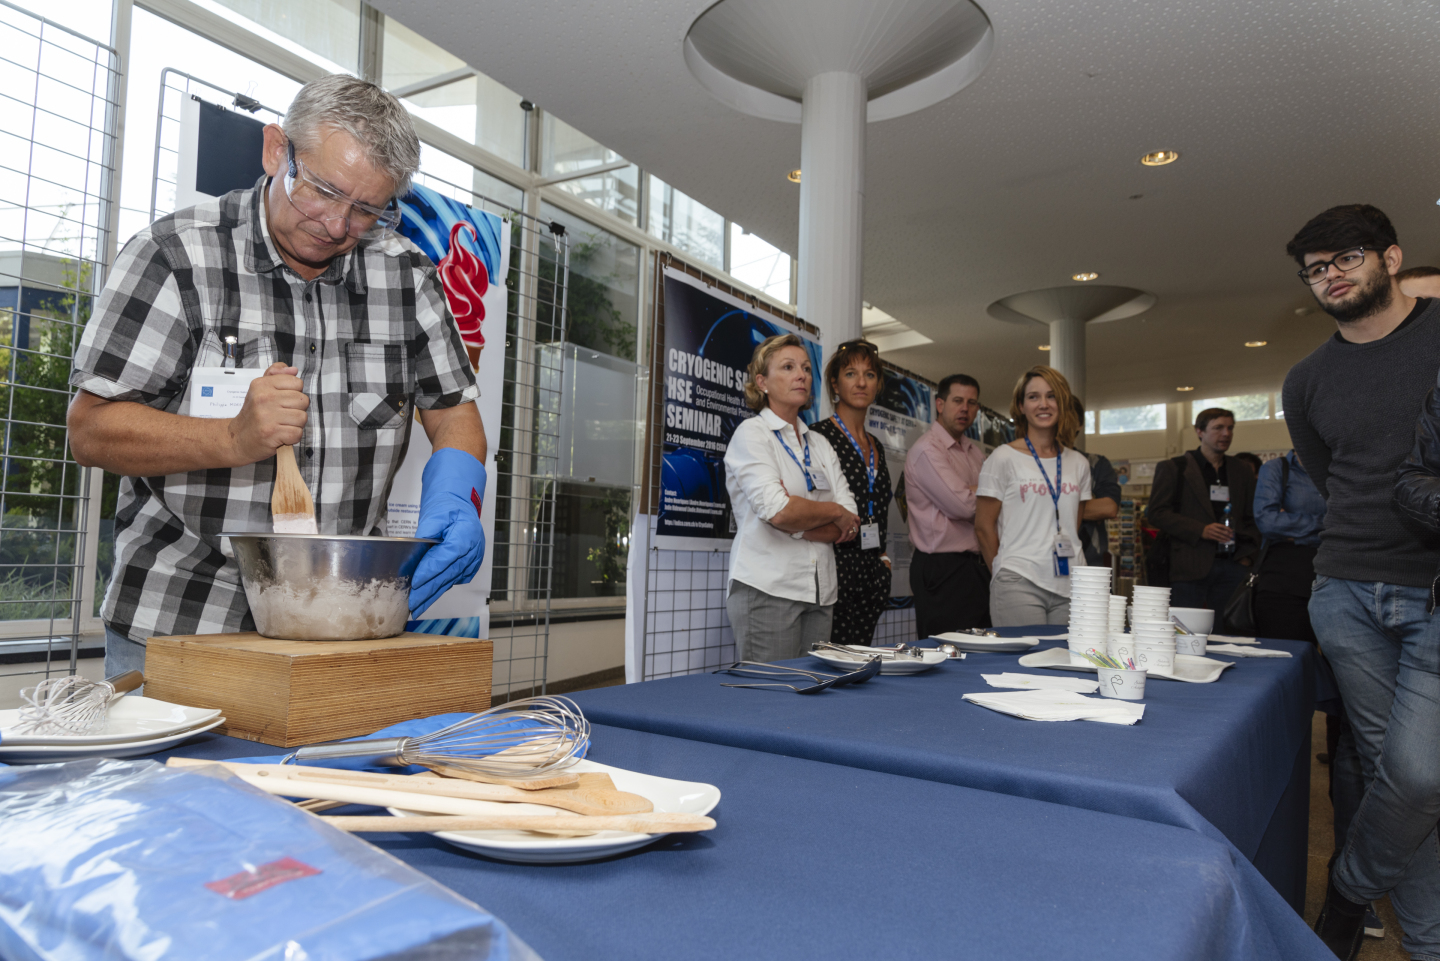 Philippe Moret prepares ice cream with liquid nitrogen as HSE personnel discuss cryogenic safety with visitors to the stand. (Image: M.Brice/CERN)